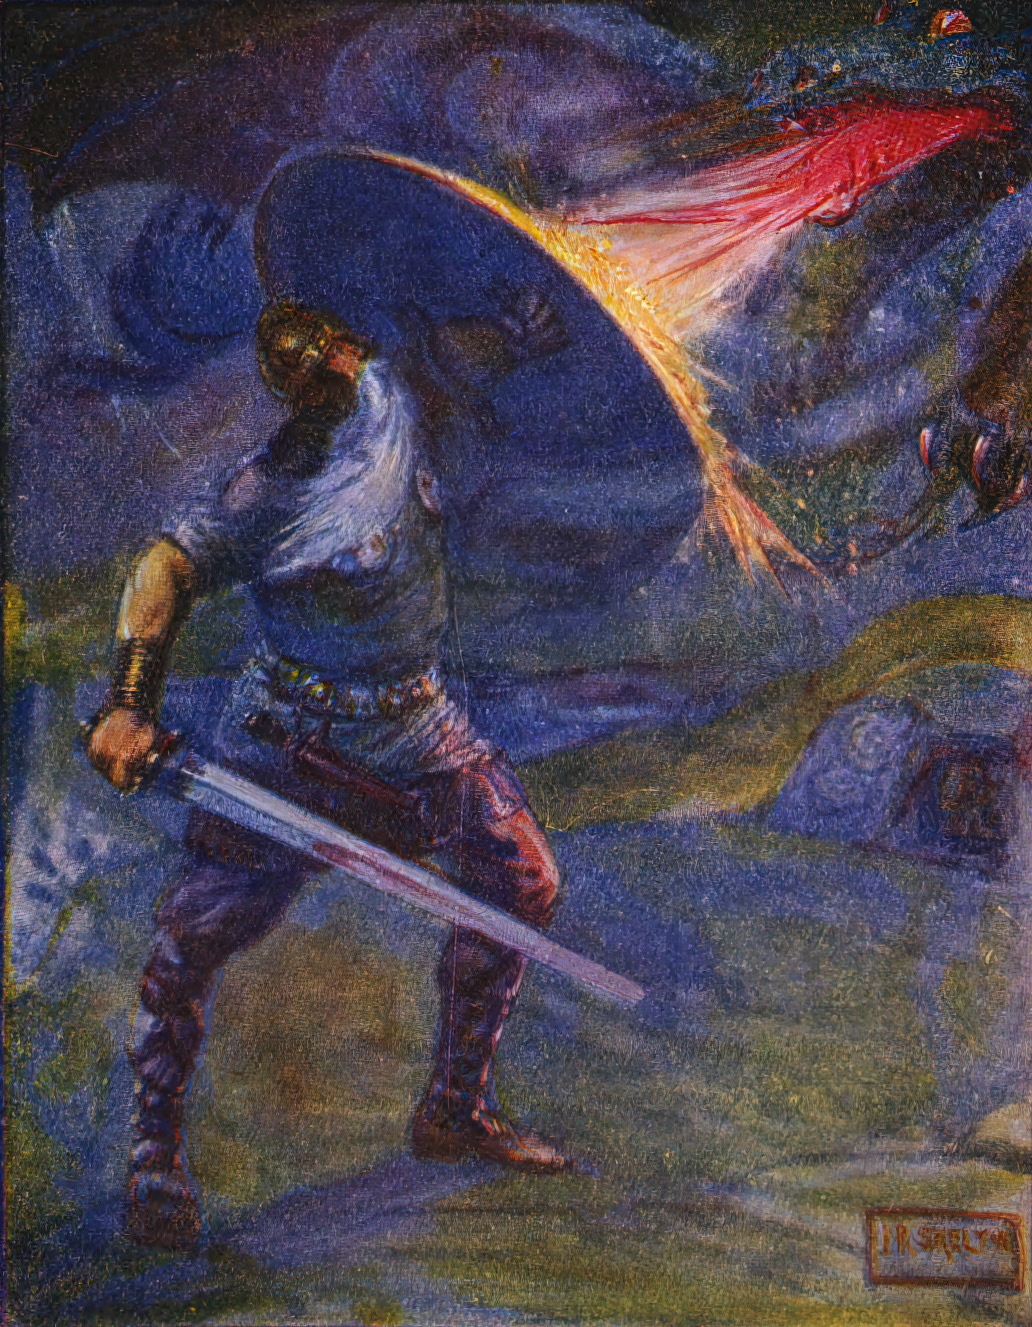 Ficheiro:Beowulf and the dragon.jpg